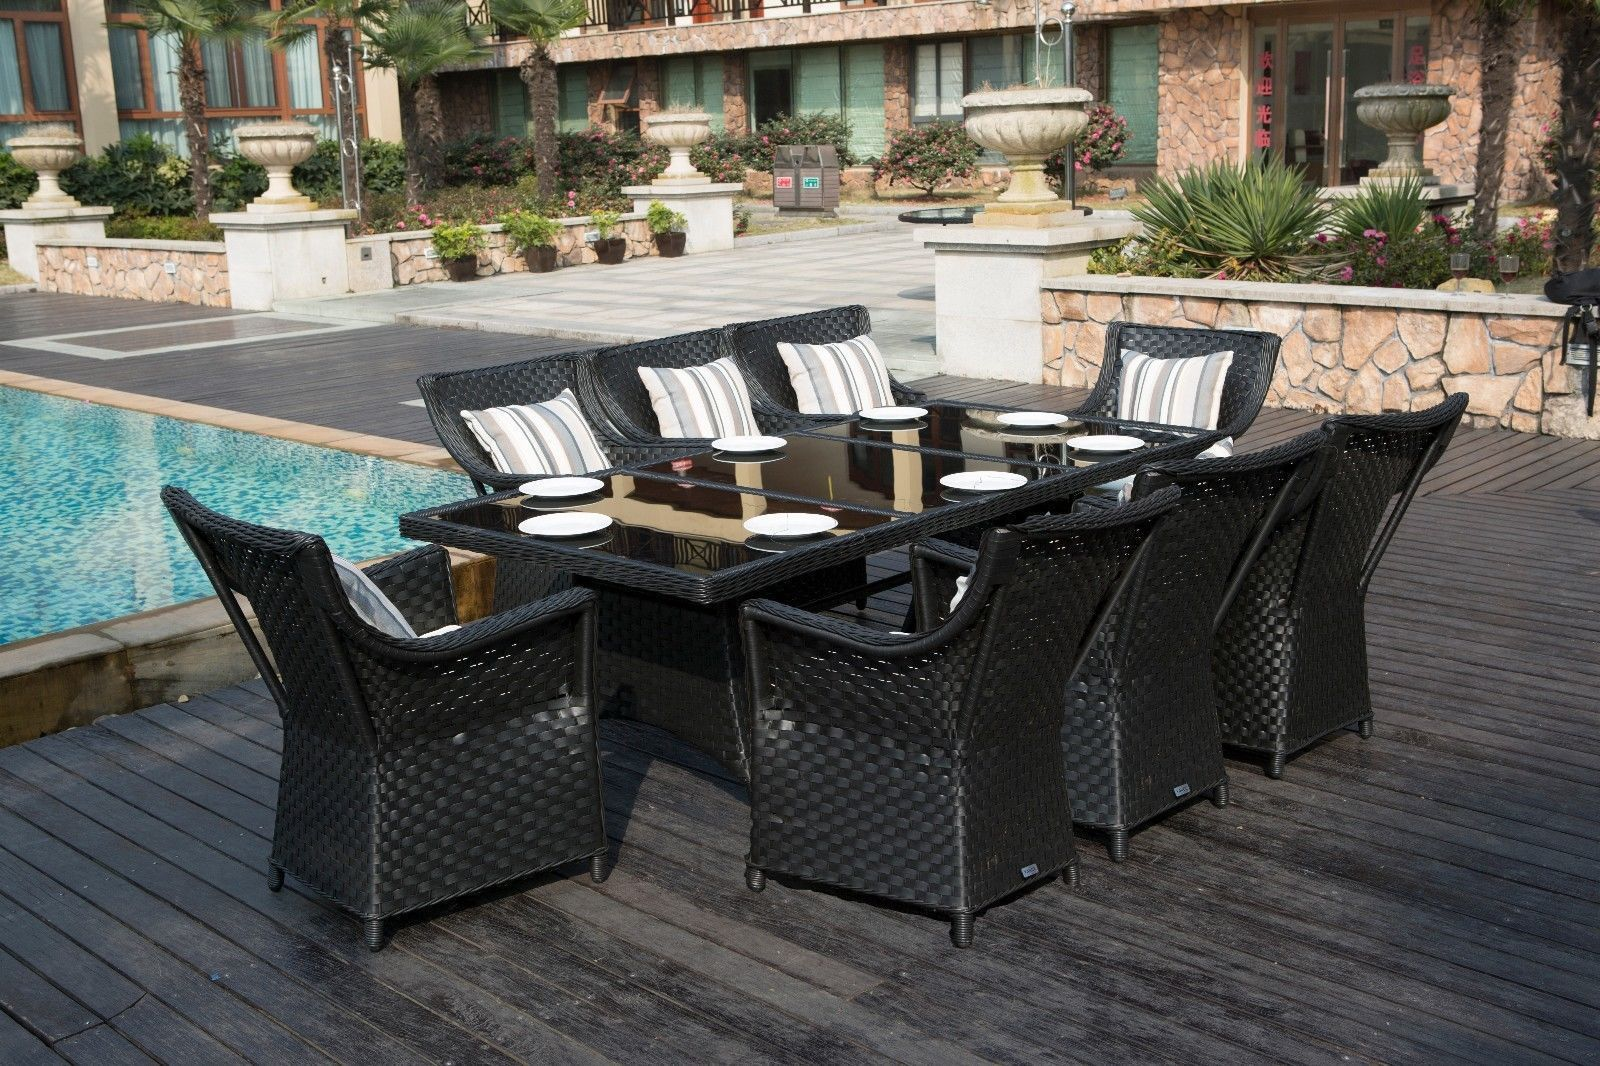 Rectangle Rattan Dining Table with 8 Chairs Garden Conservatory Patio Dining set image 3